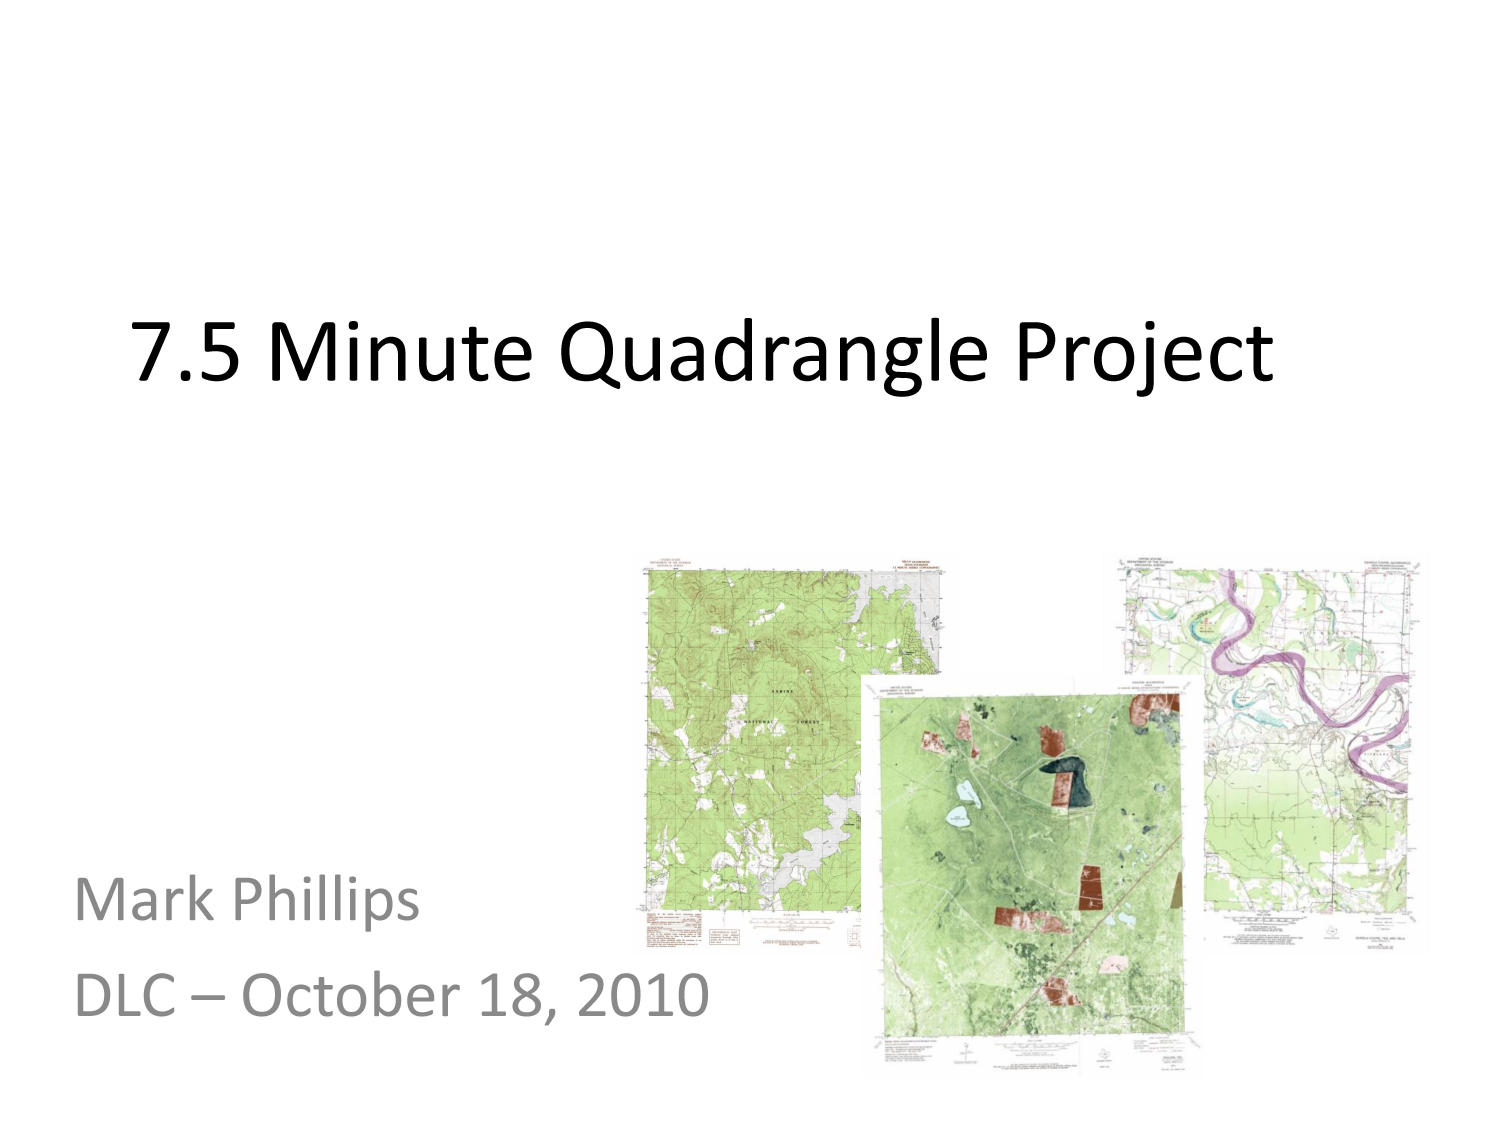 7.5 Minute Quadrangle Project                                                                                                      [Sequence #]: 1 of 27